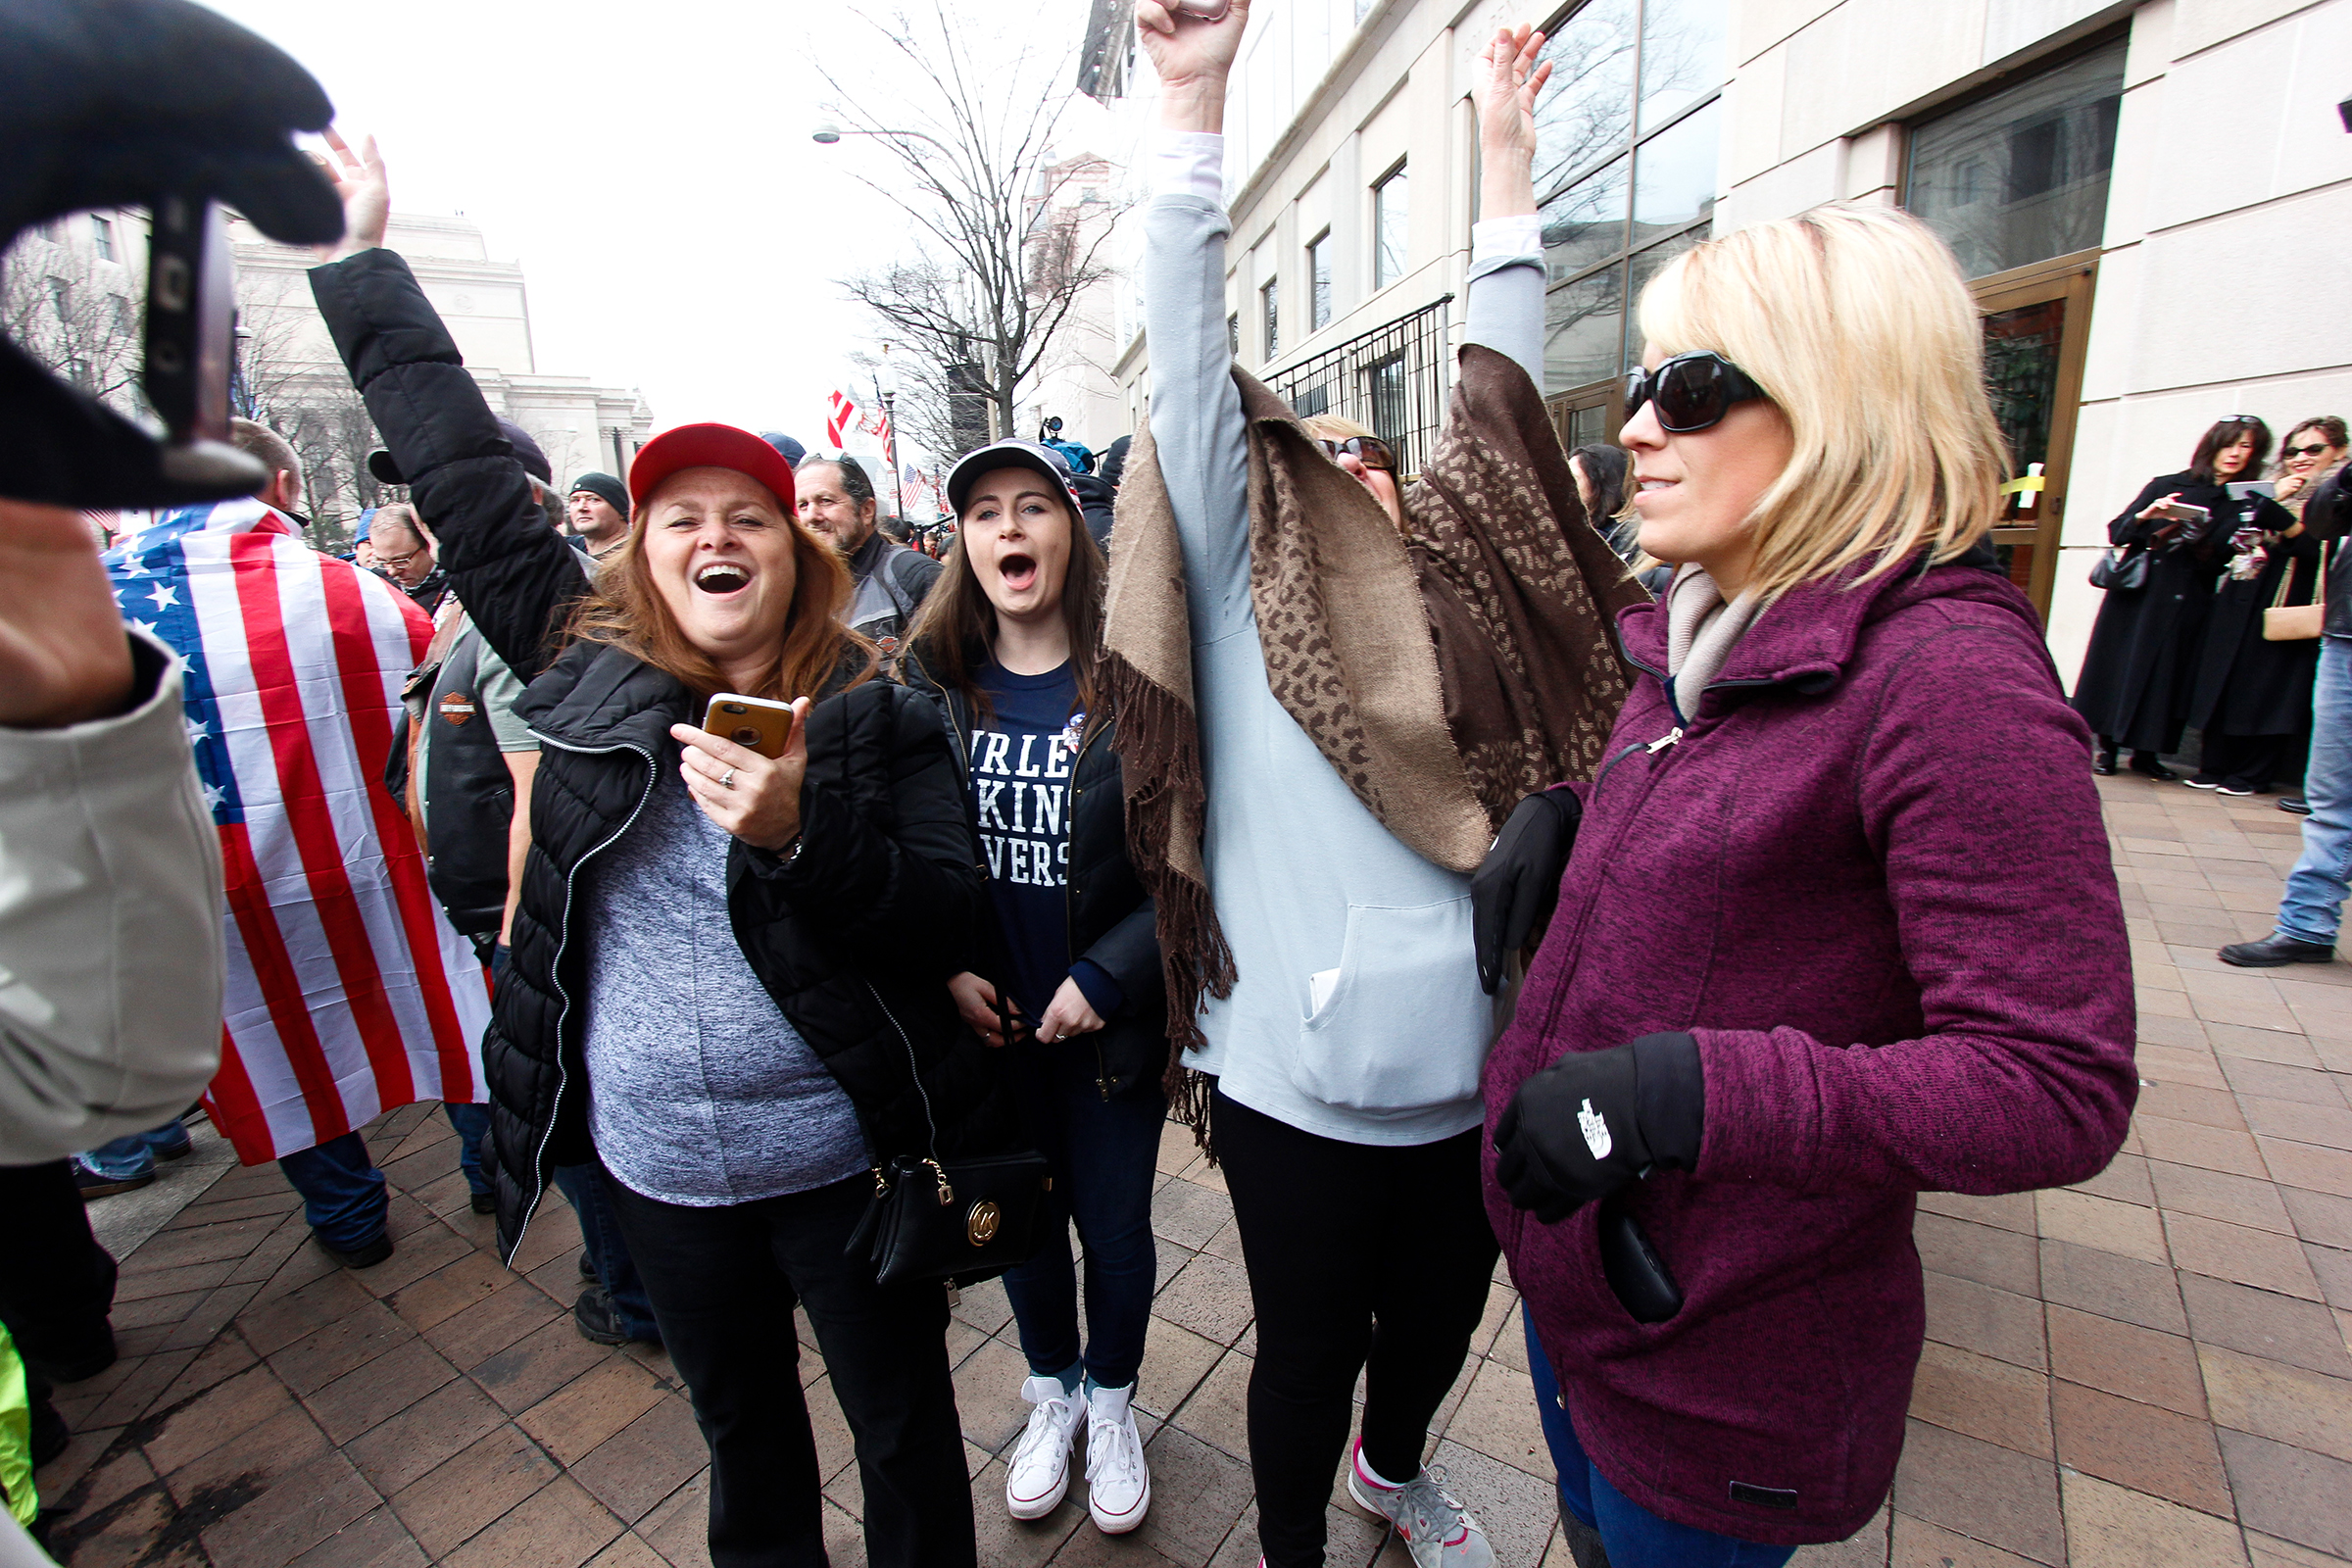 Trump supporters cheer as Donald Trump is sworn in as the 45th President of the United States on Jan. 20, 2017.